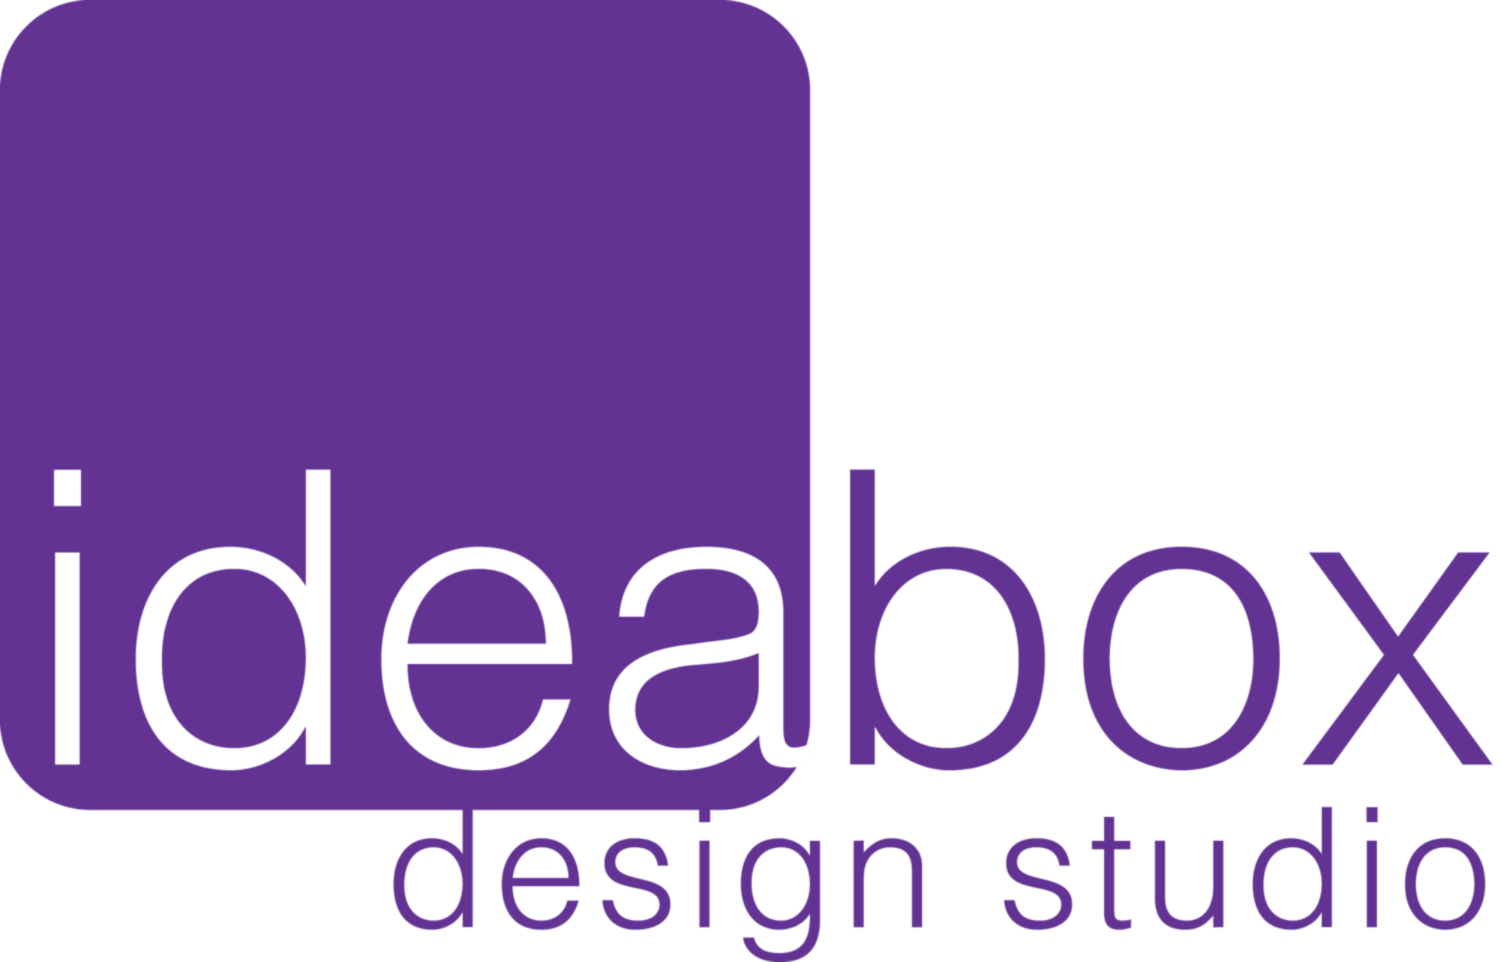 ideabox design studio